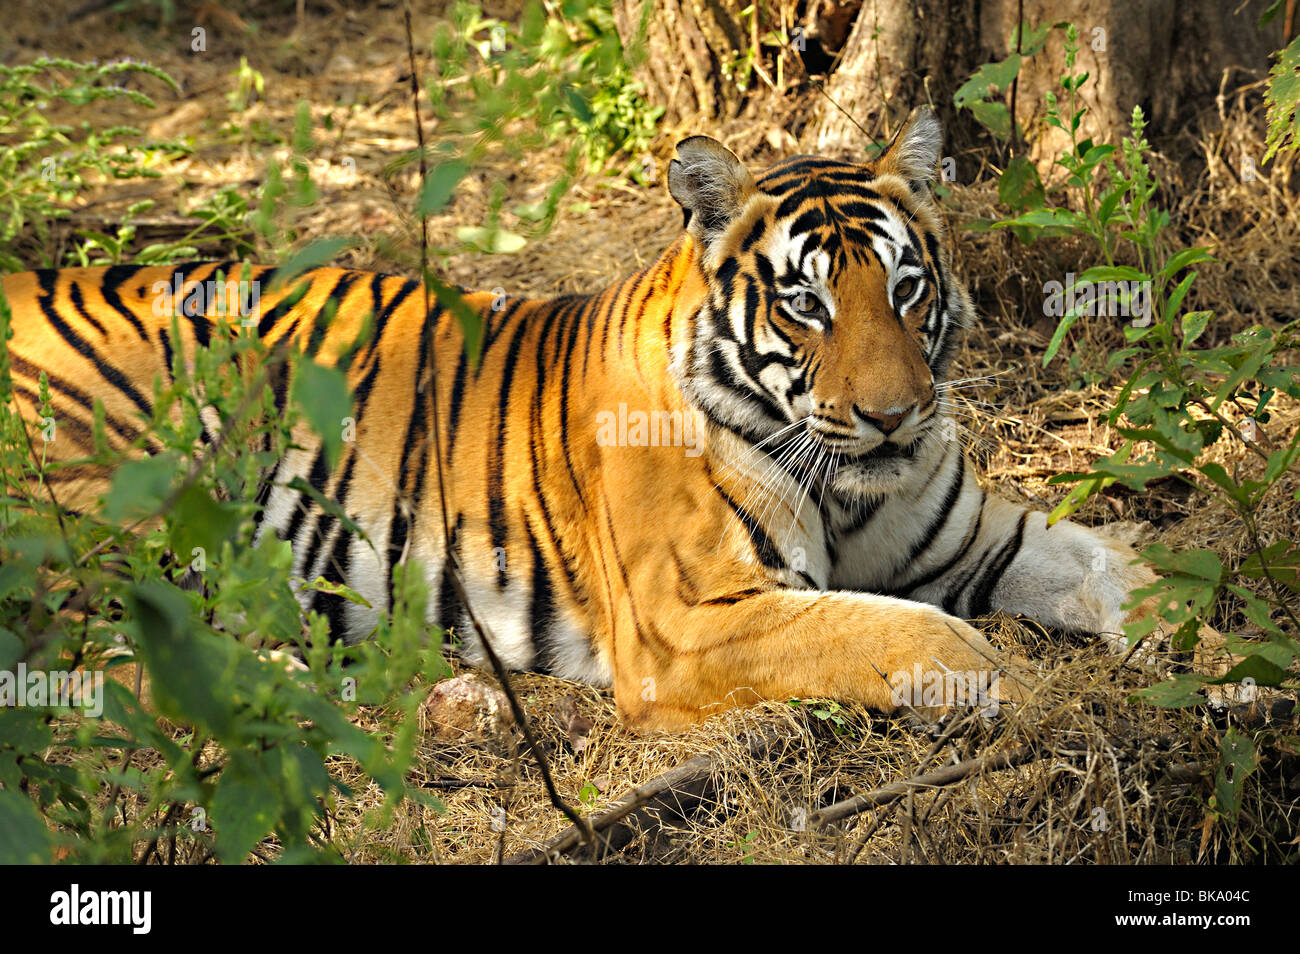 Tiger in the thick jungles of Kanha national park - Stock Image